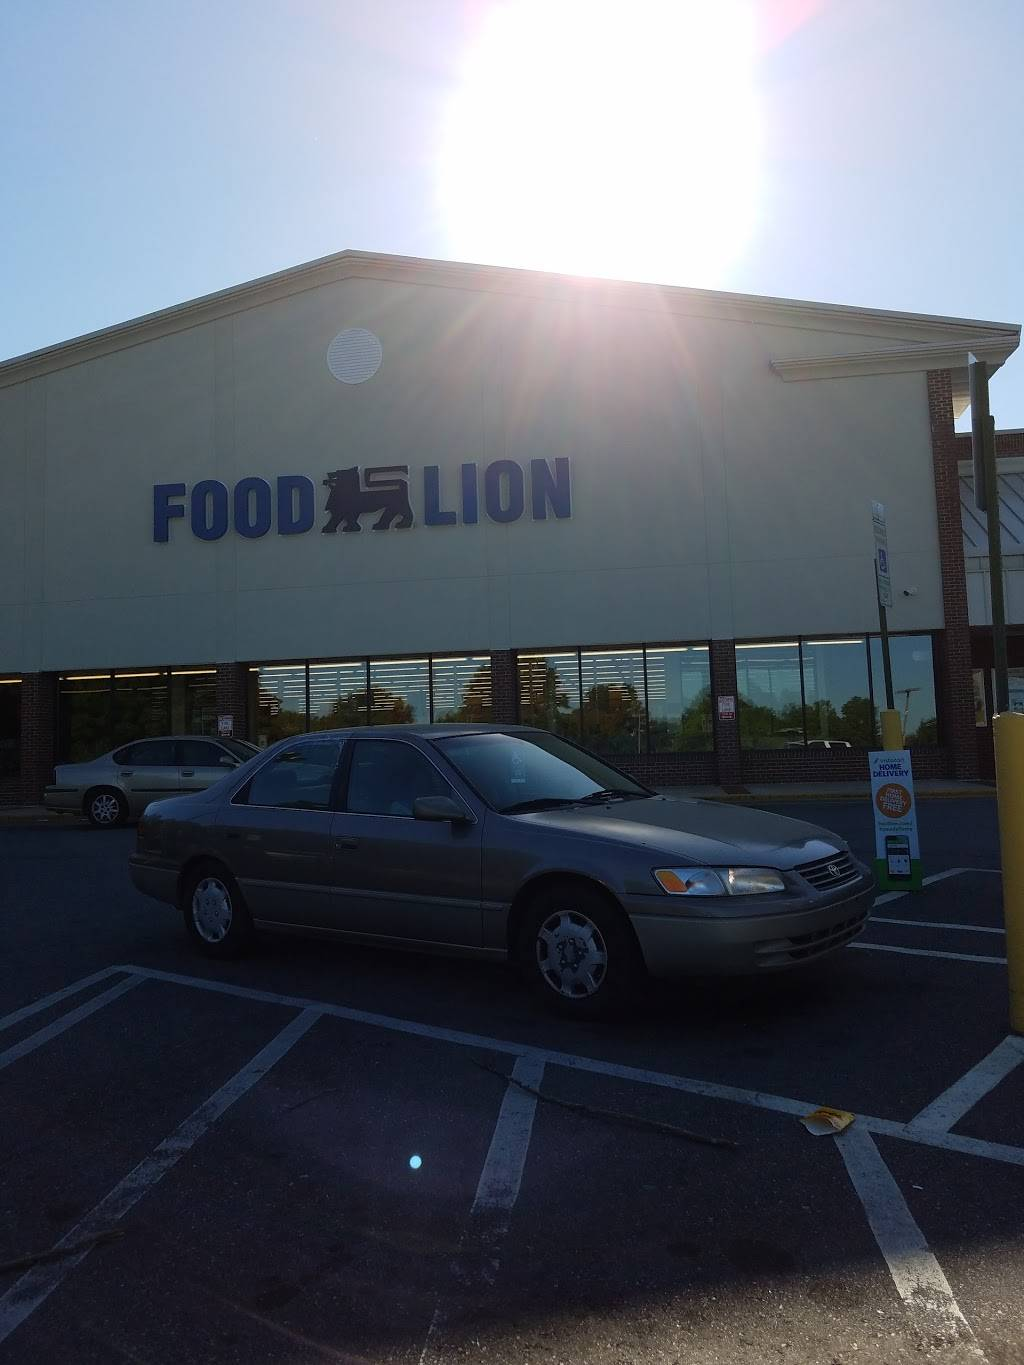 Food Lion - store    Photo 10 of 10   Address: 1601 Cross Link Rd #1, Raleigh, NC 27610, USA   Phone: (919) 807-1395